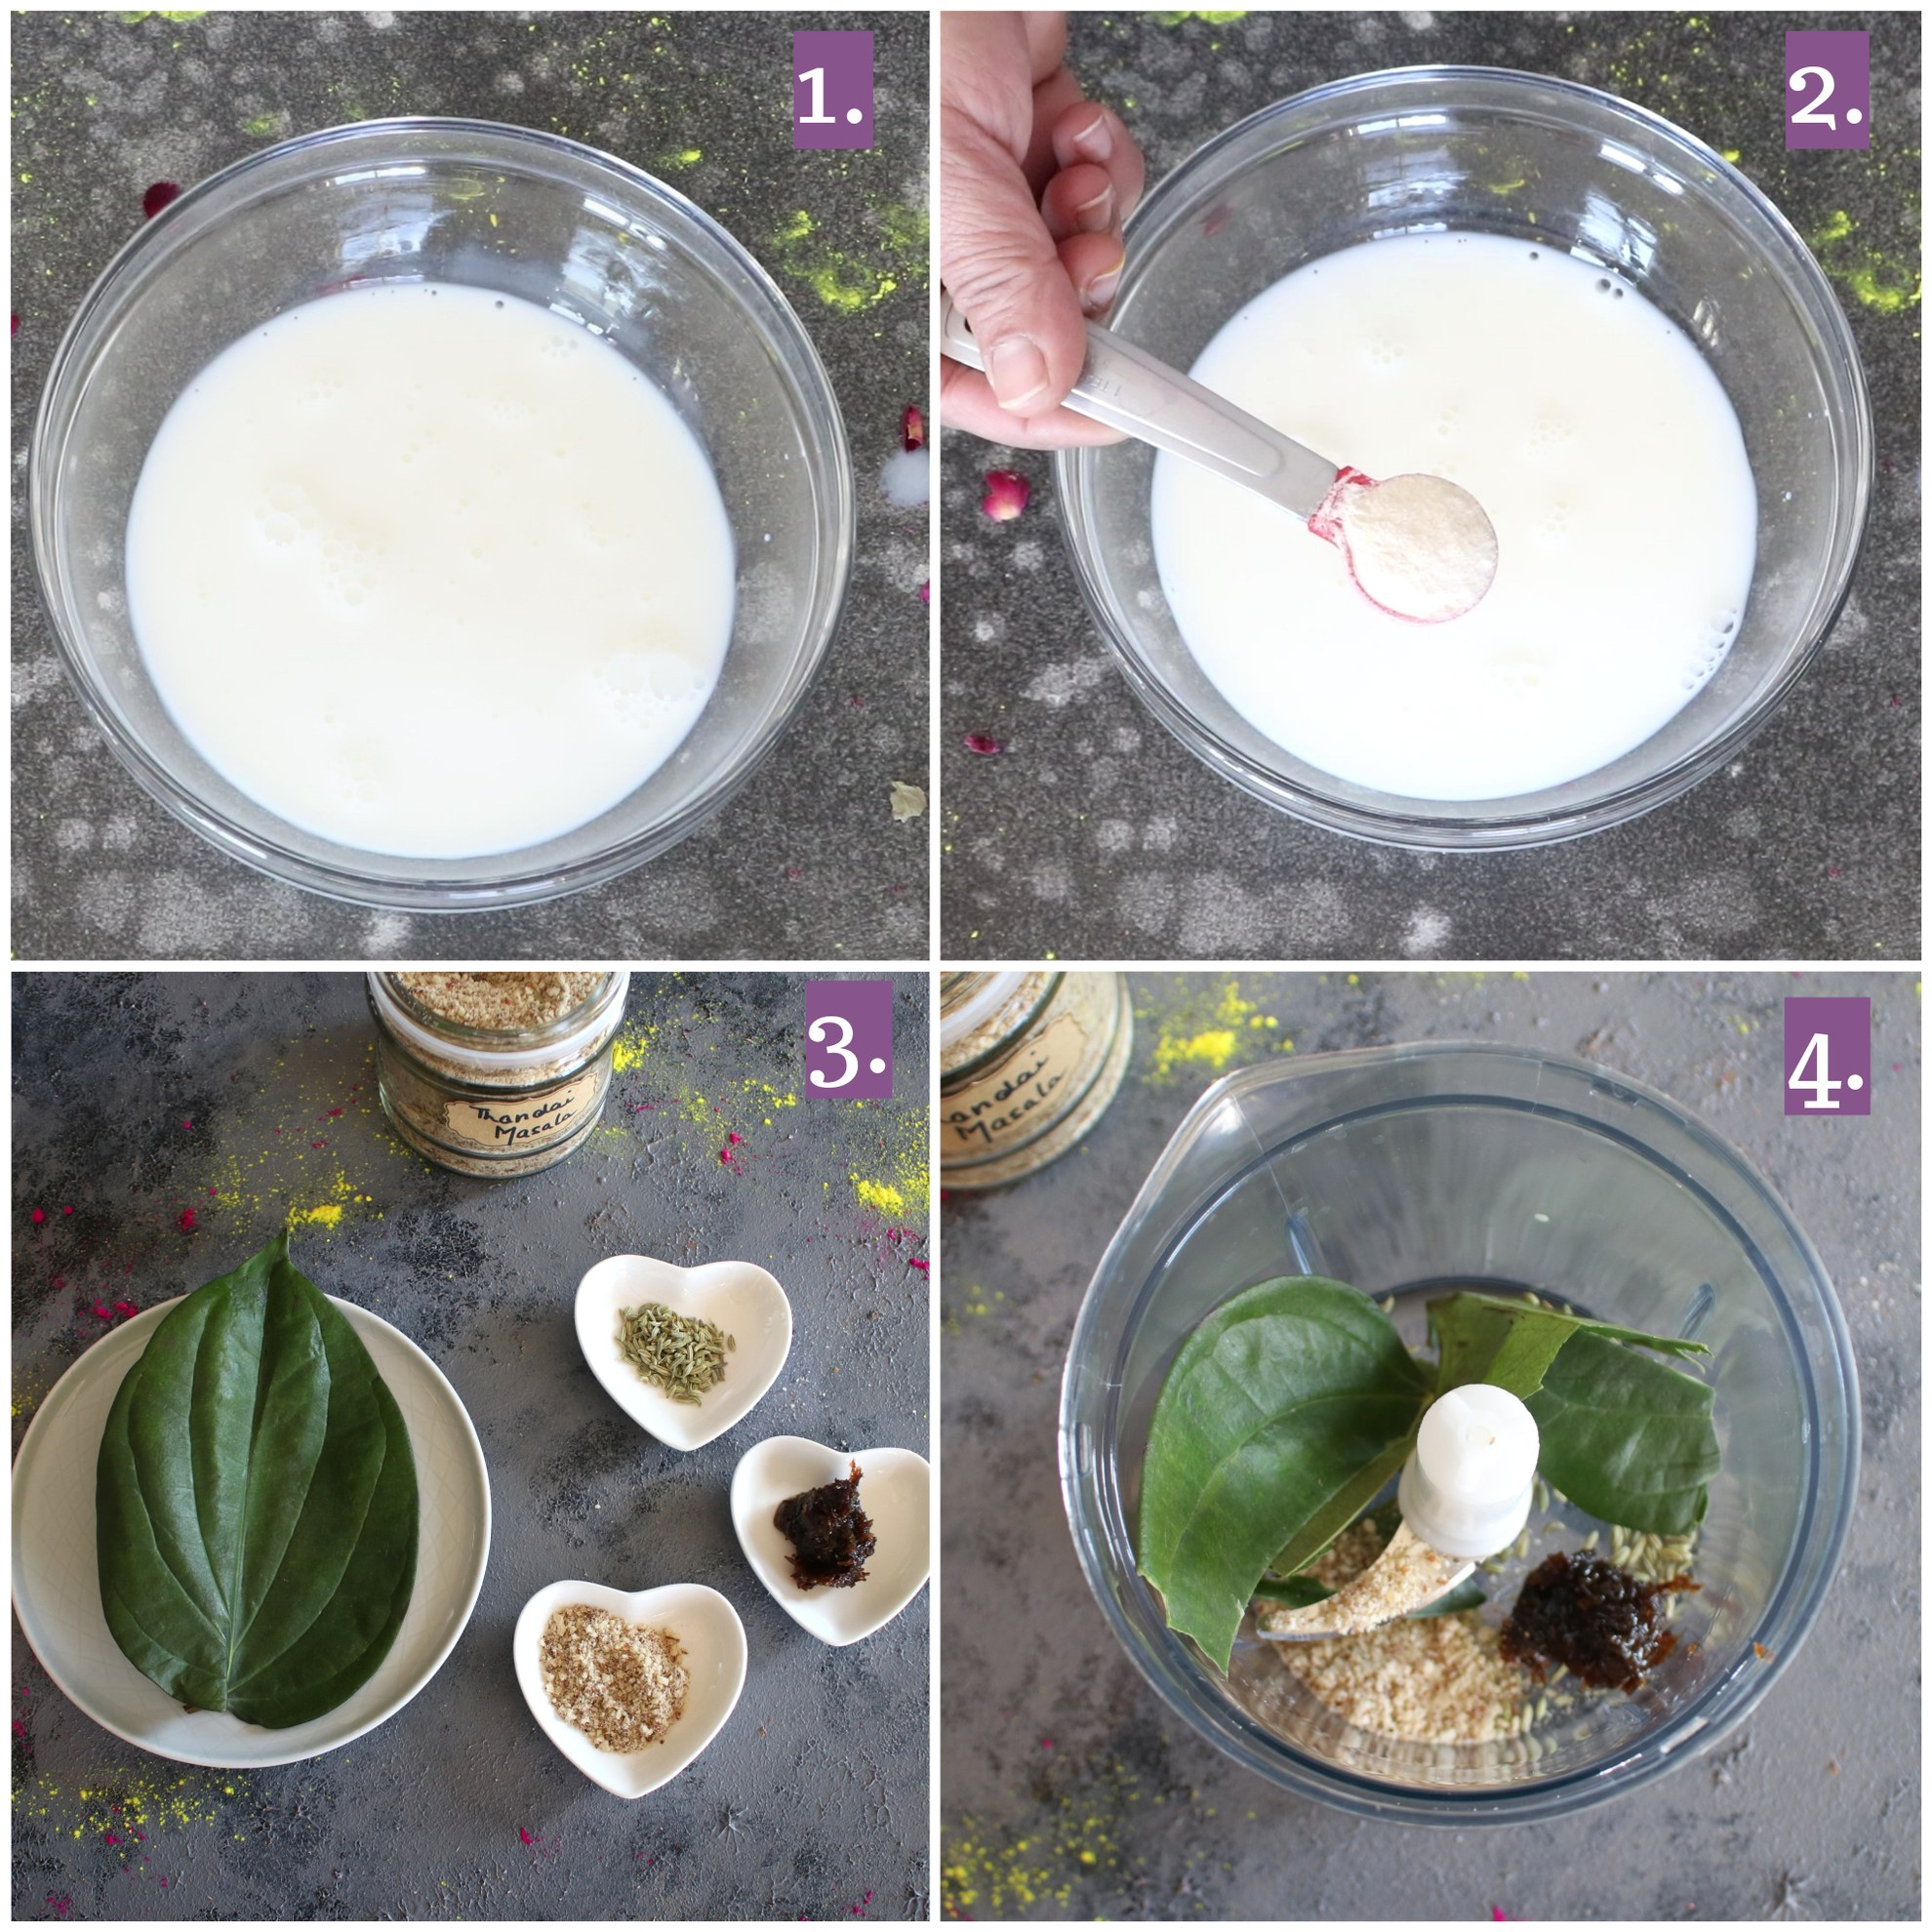 Making of Paan Panna Cotta